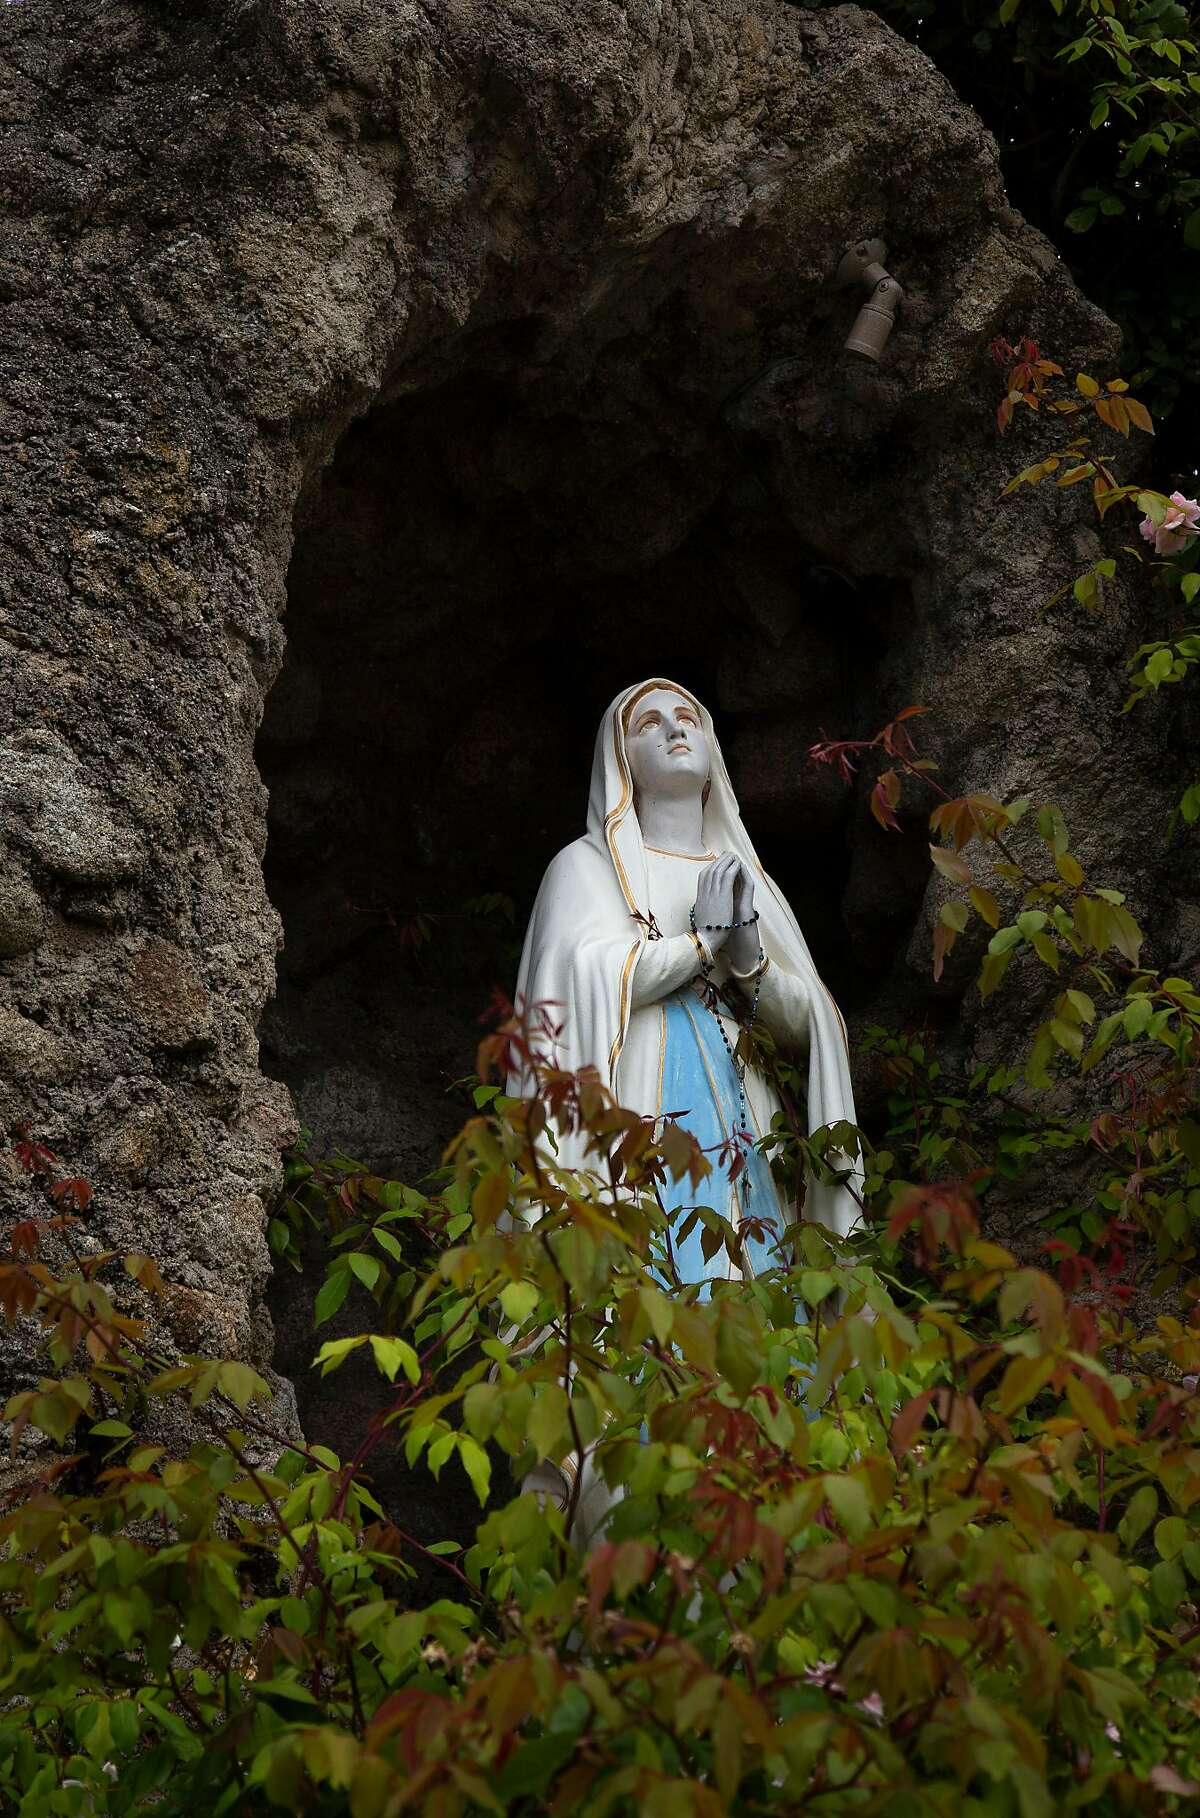 A grotto with a stature of the Virgin Mary is on the grounds of San Carlos Cathedral on Monday, 7/30, 2018 in Monterey, California. Local historian Tim Thomas recommends the cathedral to visitors who are interested in Monterey's history. The cathedral is the oldest continuously operating parish and the oldest stone building in California. It was built in 1794 making it the oldest (and smallest) serving cathedral along with St. Louis Cathedral in New Orleans, Louisiana.